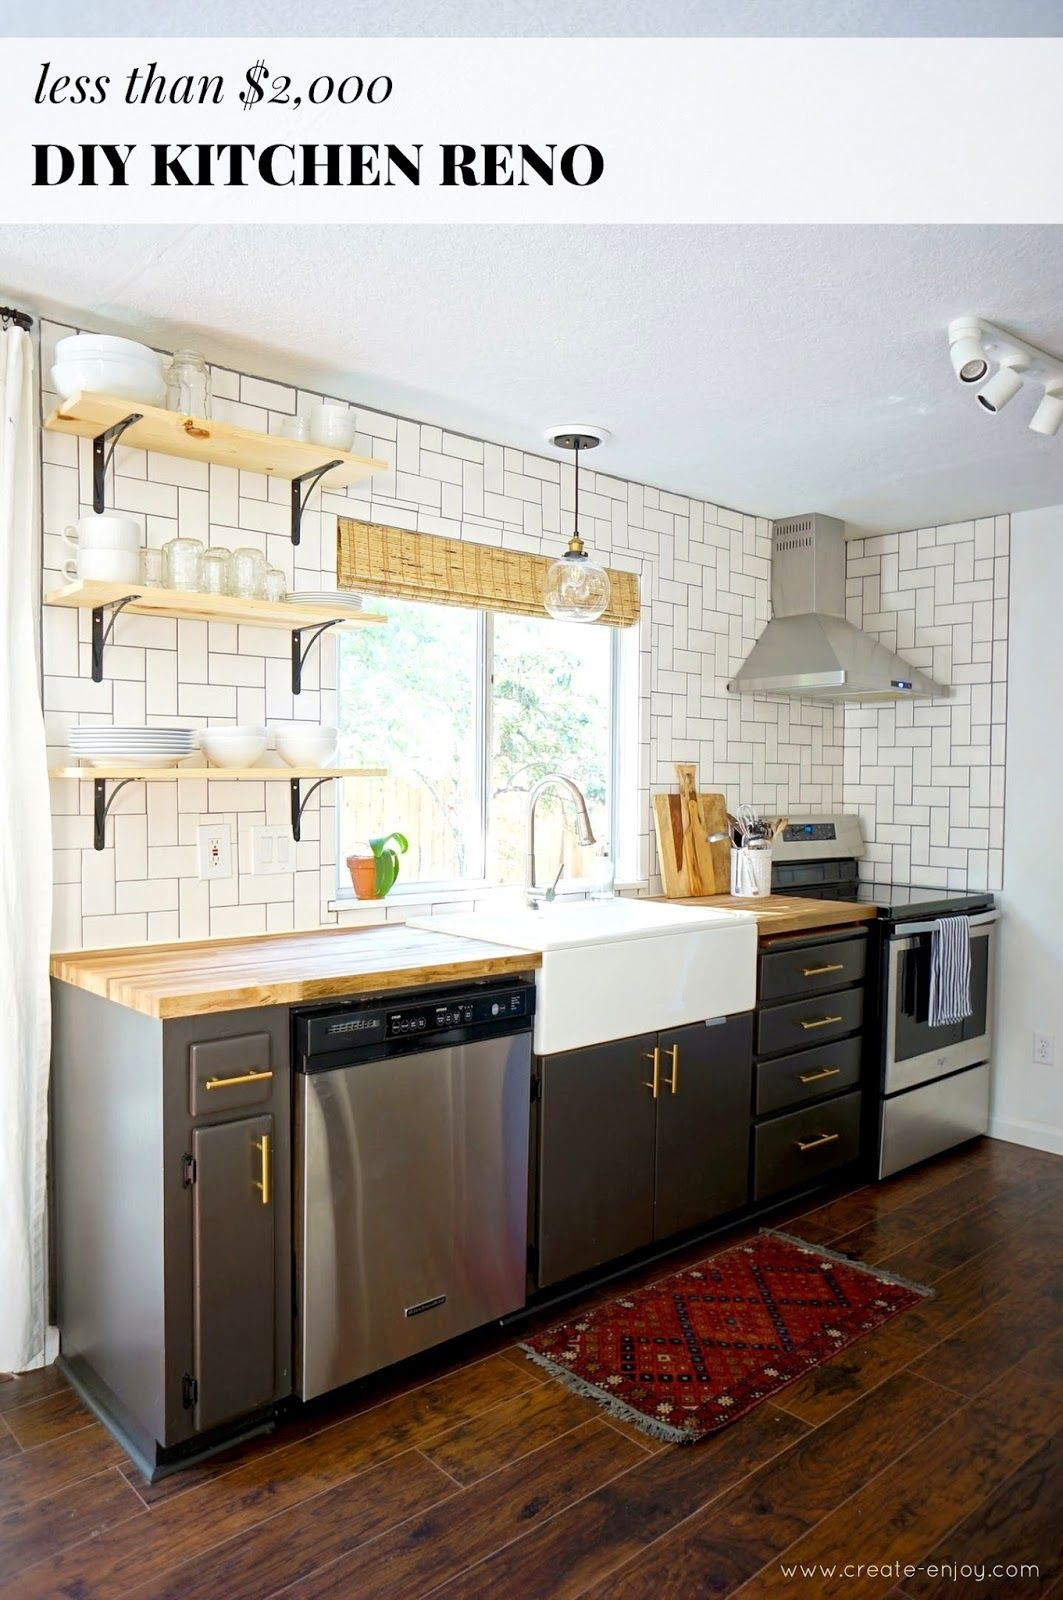 Budget Kitchen Reno Before After Cost And Diys Galley Kitchen